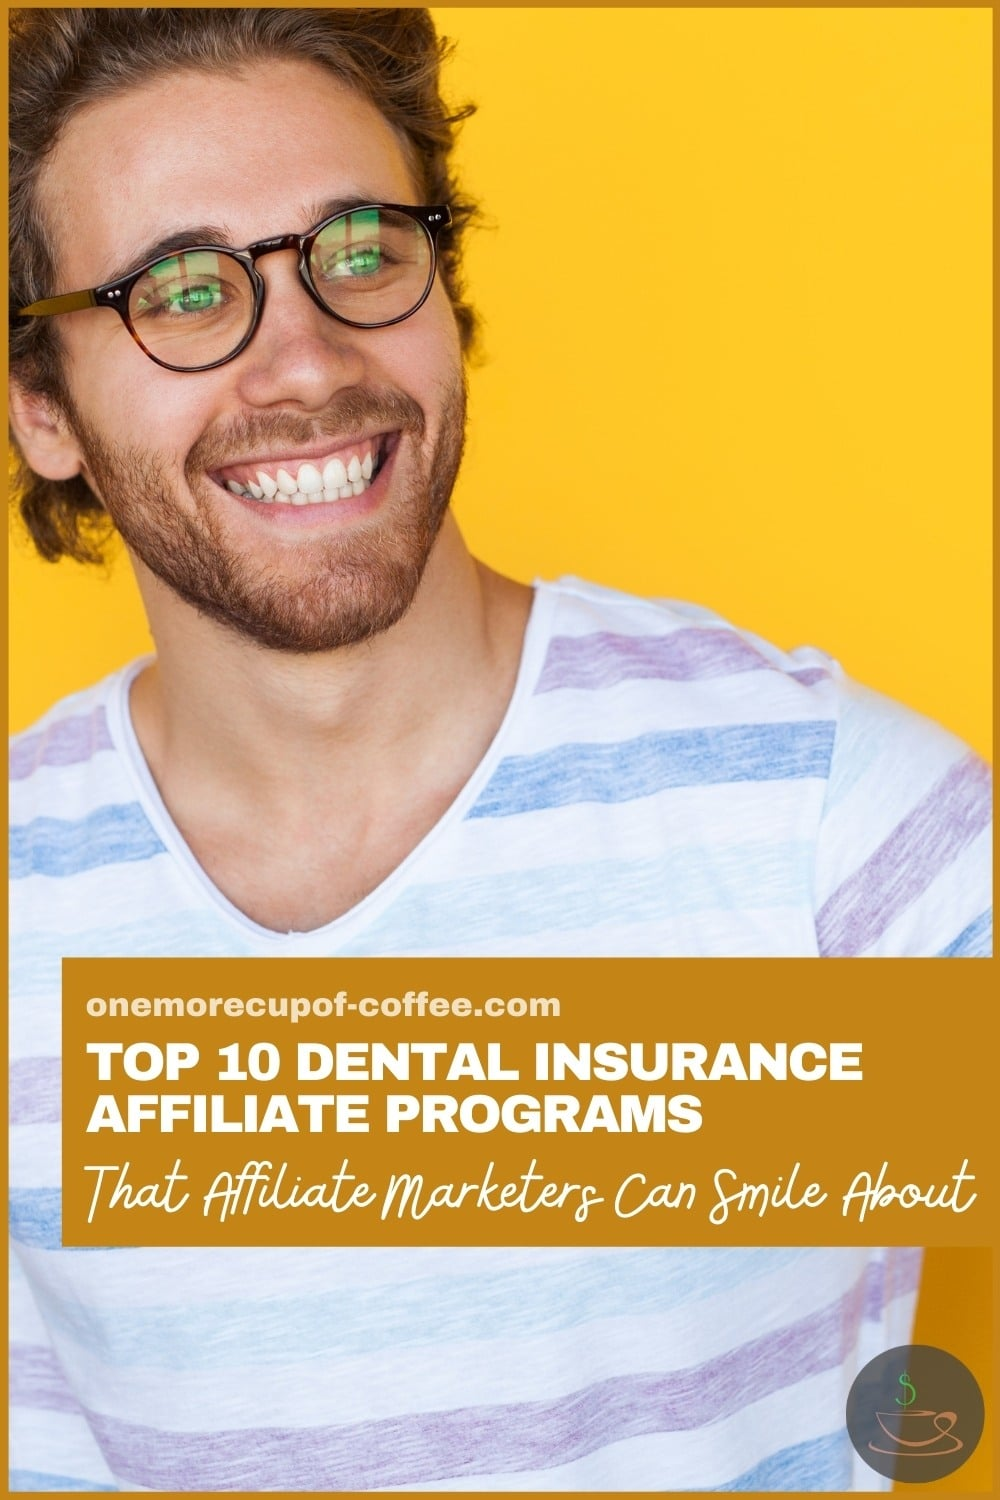 """smiling man with eyeglasses wearing a striped shirt; with text overlay """"Top 10 Dental Insurance Affiliate Programs That Affiliate Marketers Can Smile About"""""""